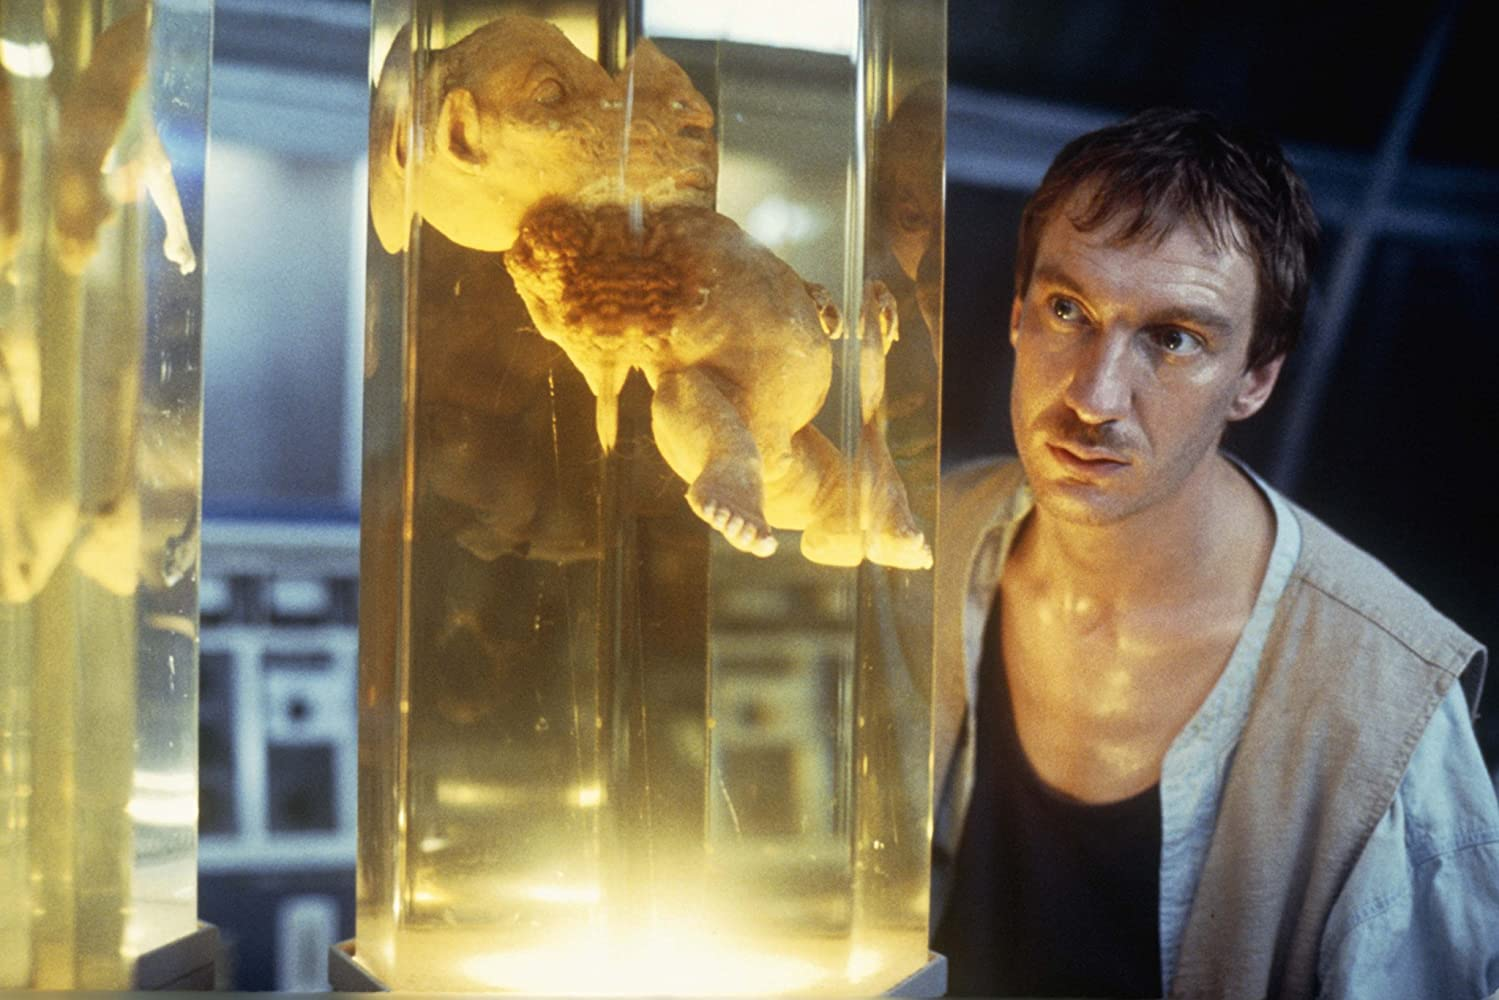 David Thewlis in The Island of Dr. Moreau (1996)